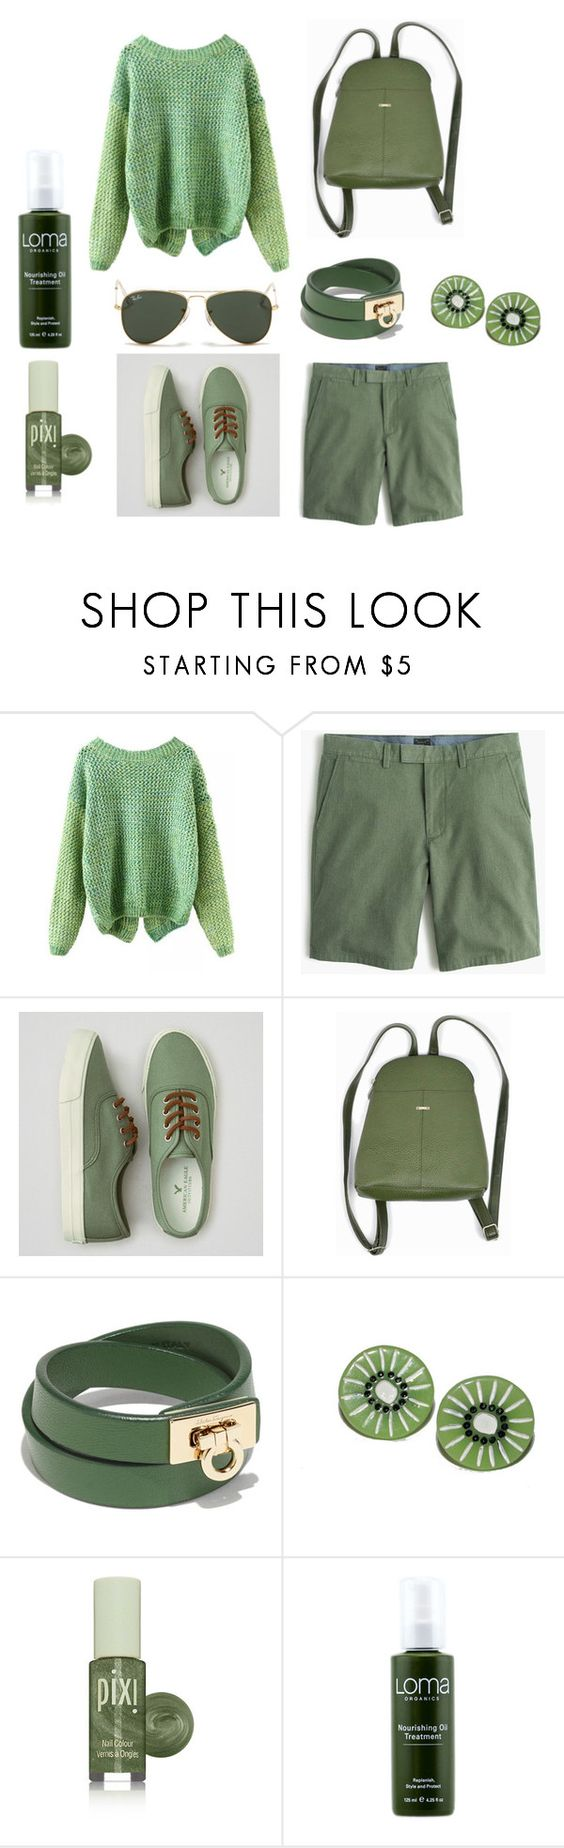 """GREEN"" by lana-smotveeva ❤ liked on Polyvore featuring American Eagle Outfitters, Salvatore Ferragamo, Pixi, Loma, Ray-Ban, women's clothing, women's fashion, women, female and woman"